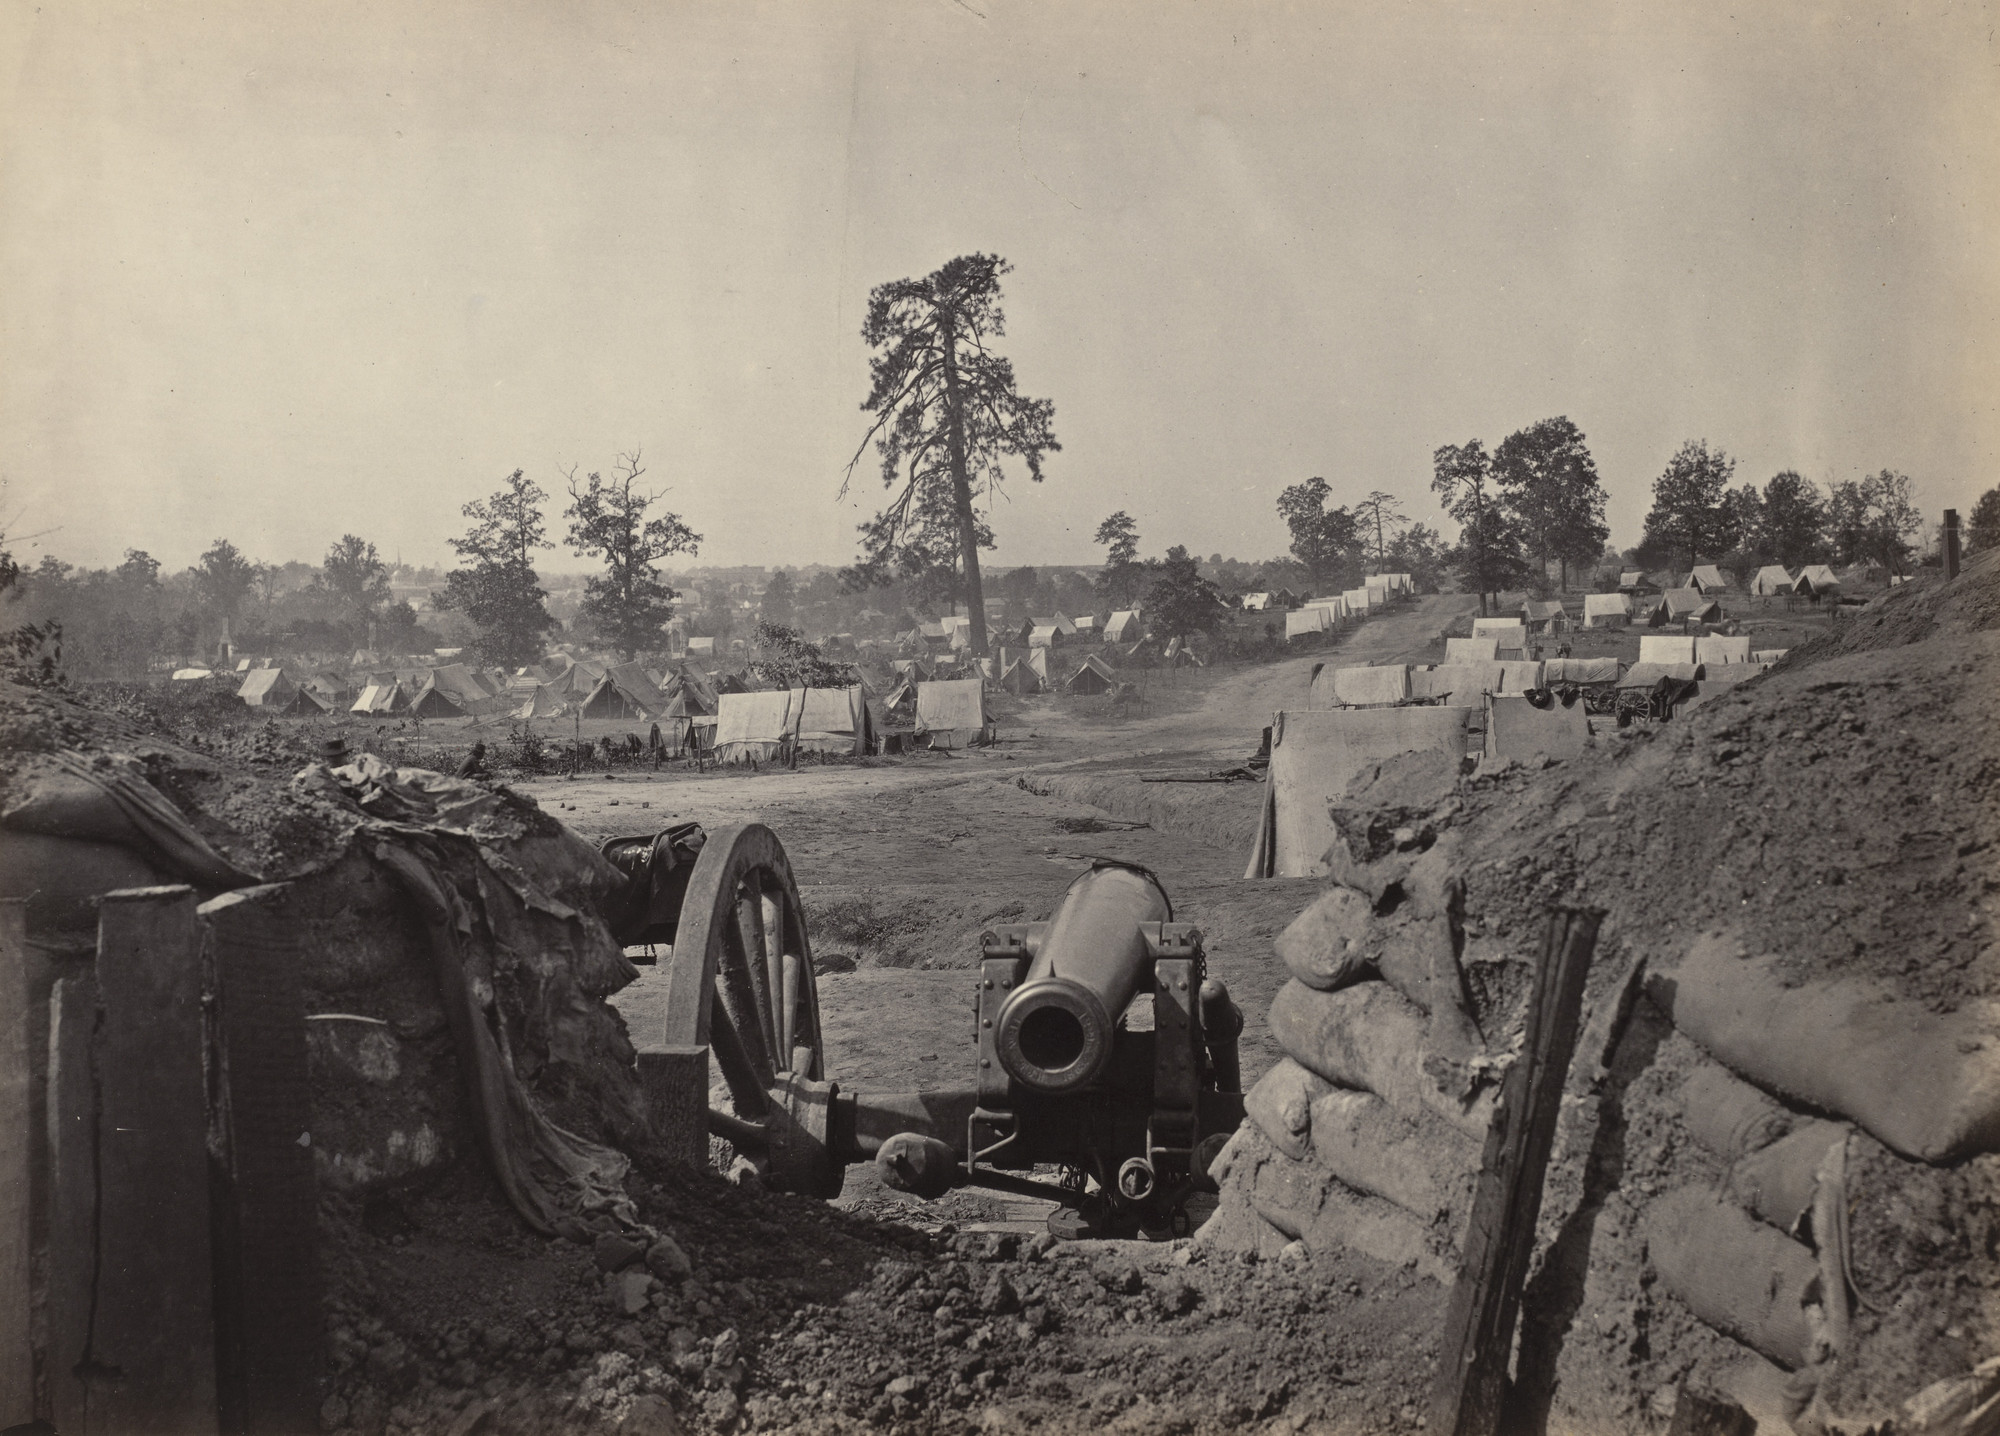 George Barnard. Atlanta, from the Works, No. 3 from the album Photographic Views of Sherman's Campaign. 1864-65